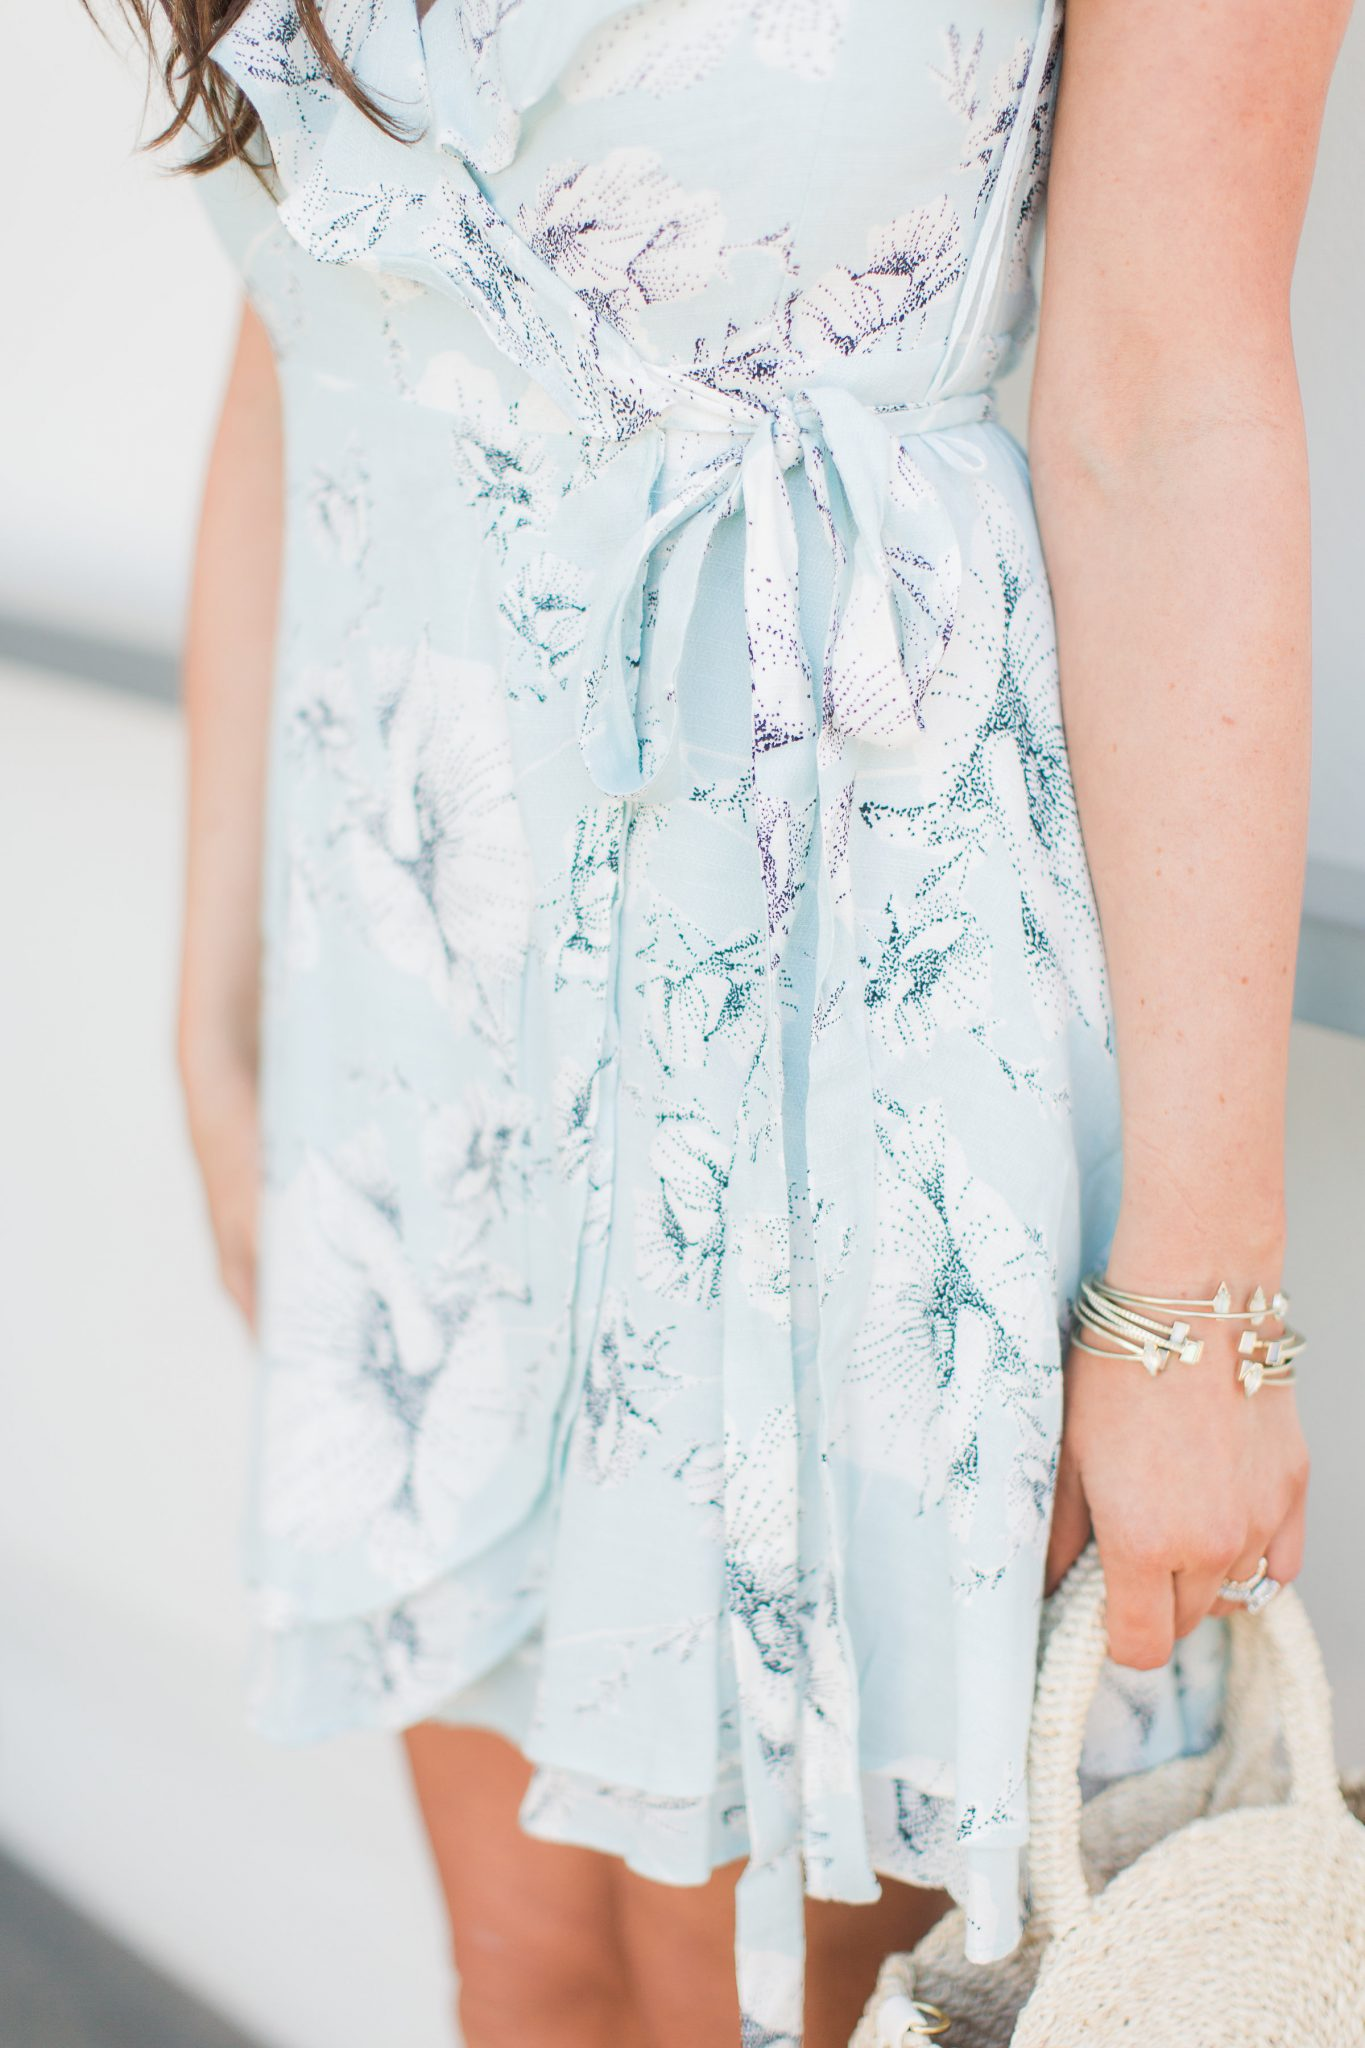 Free People floral wrap dress - My Favorite Cute Easter Dresses by popular Orange County fashion blogger Maxie Elise